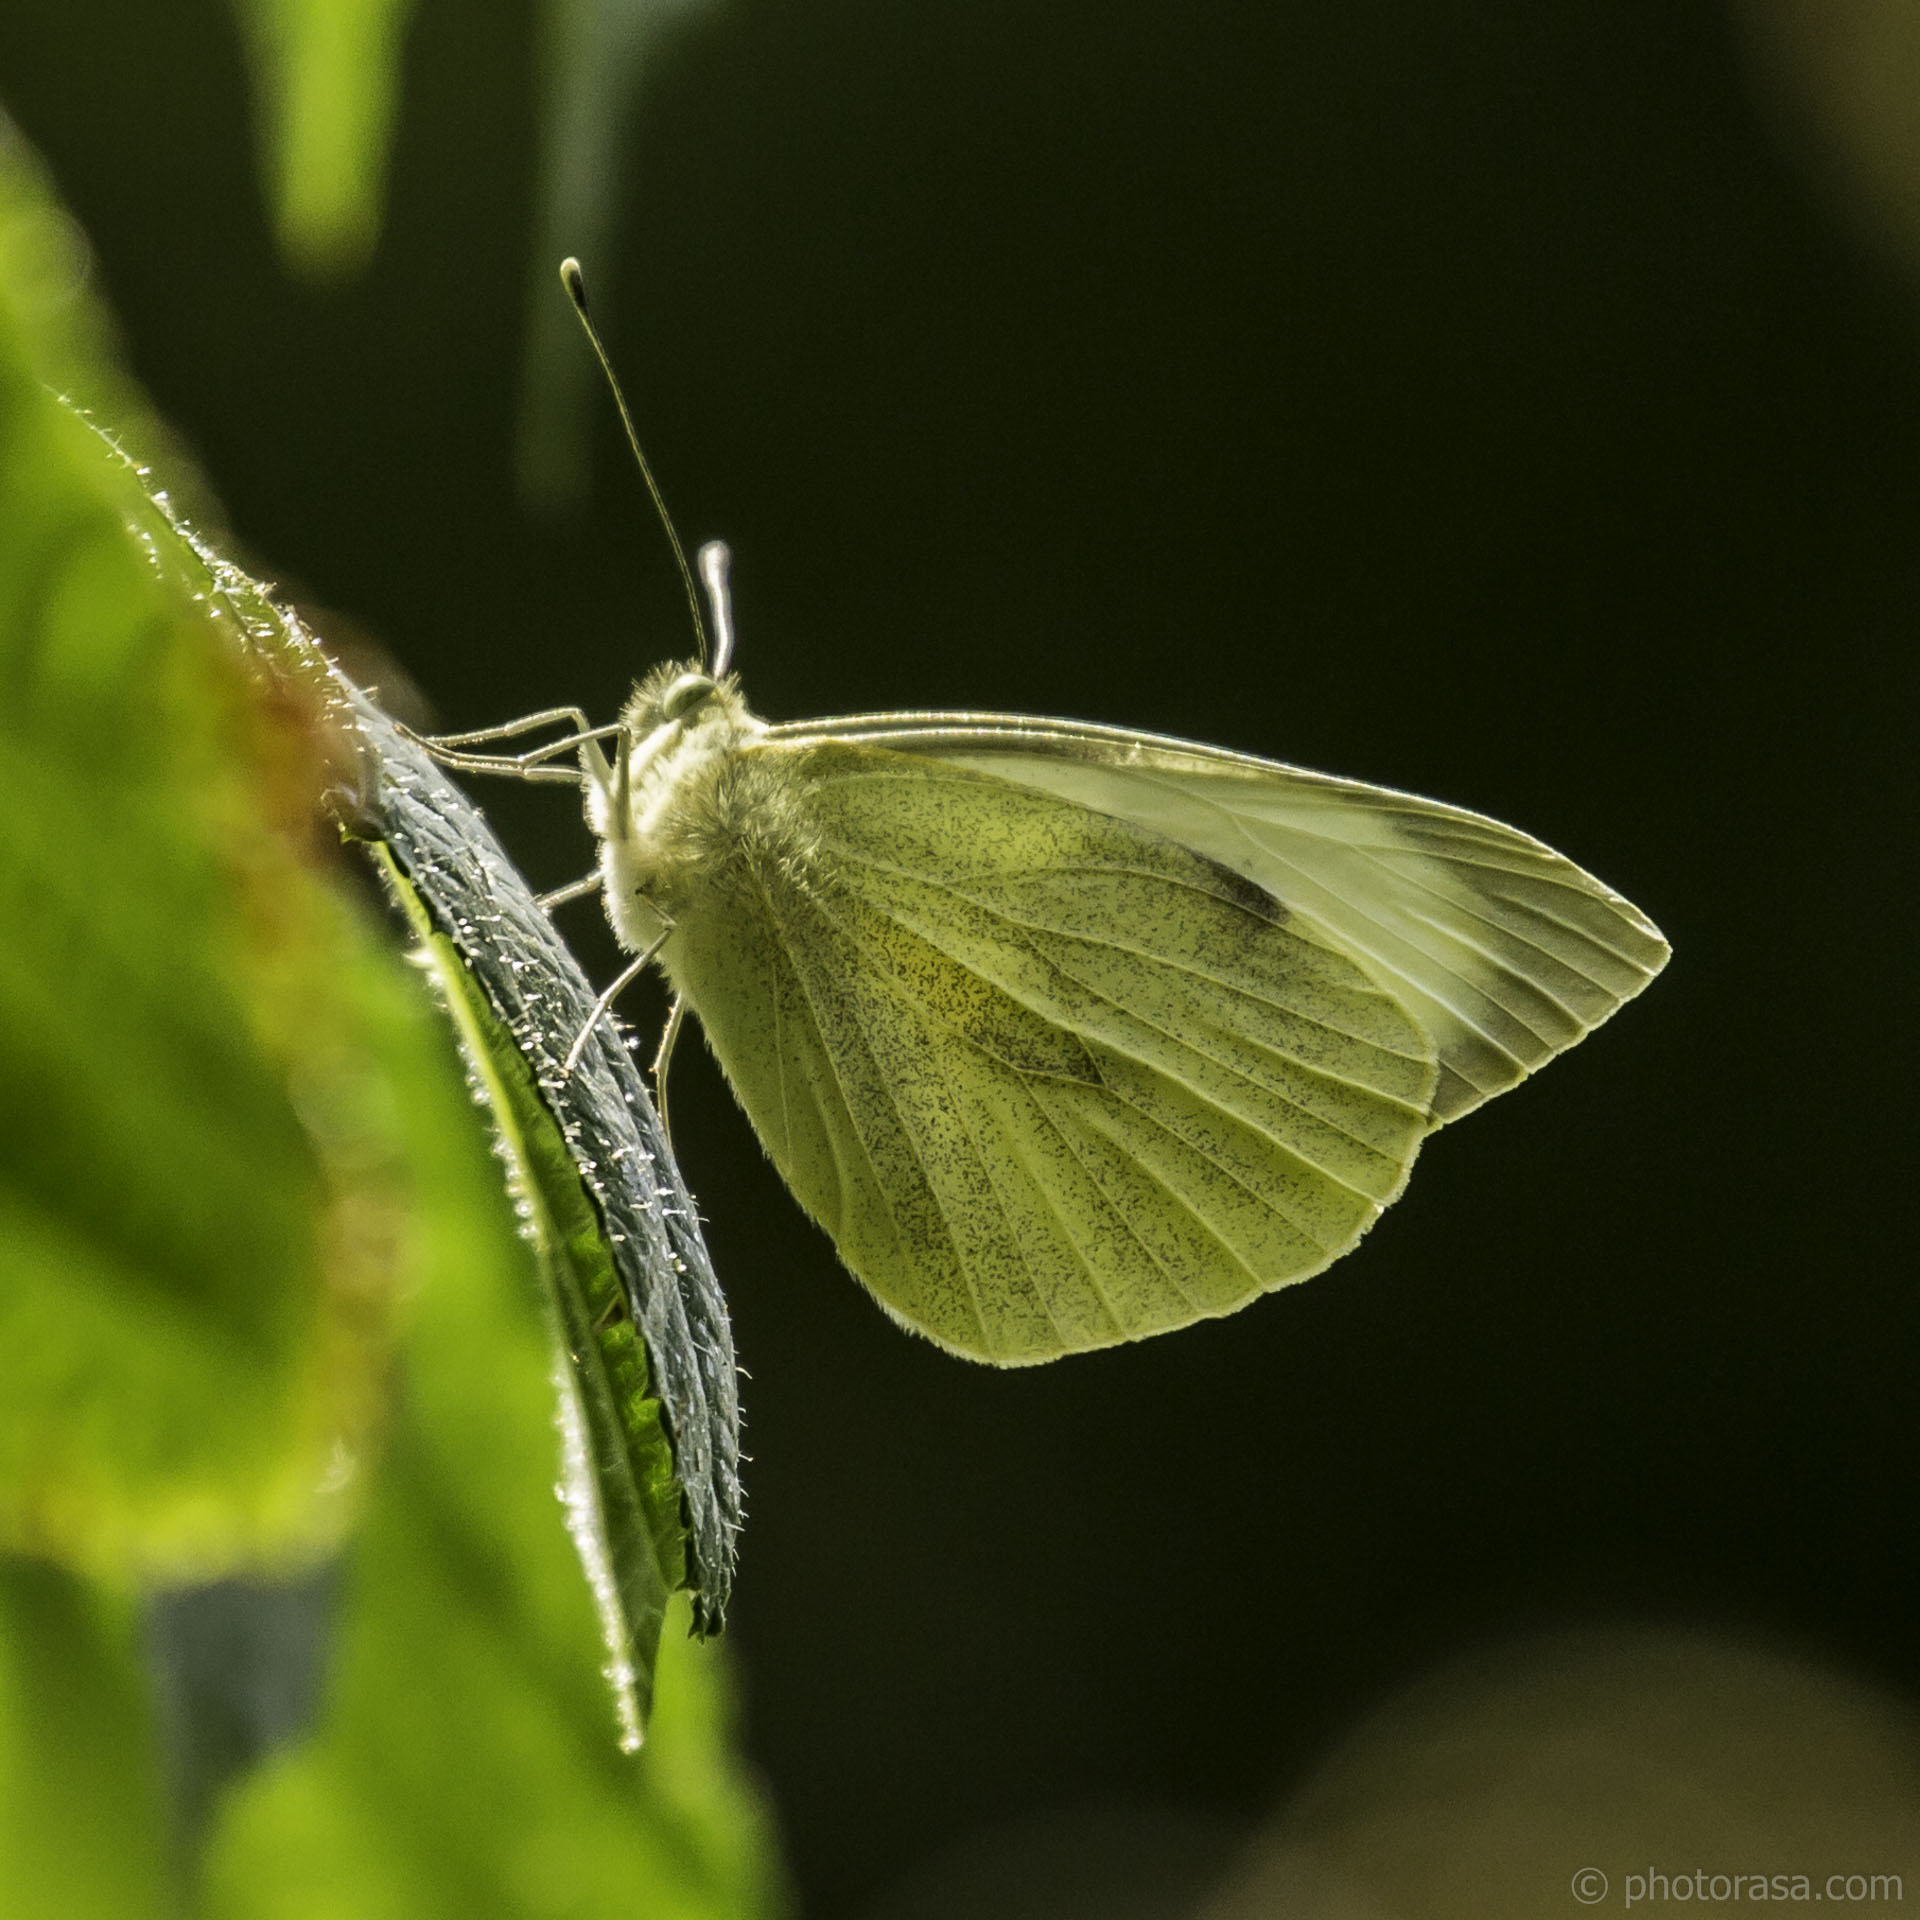 http://photorasa.com/large-white-butterfly-in-sunlight/large-veined-white-butterly/